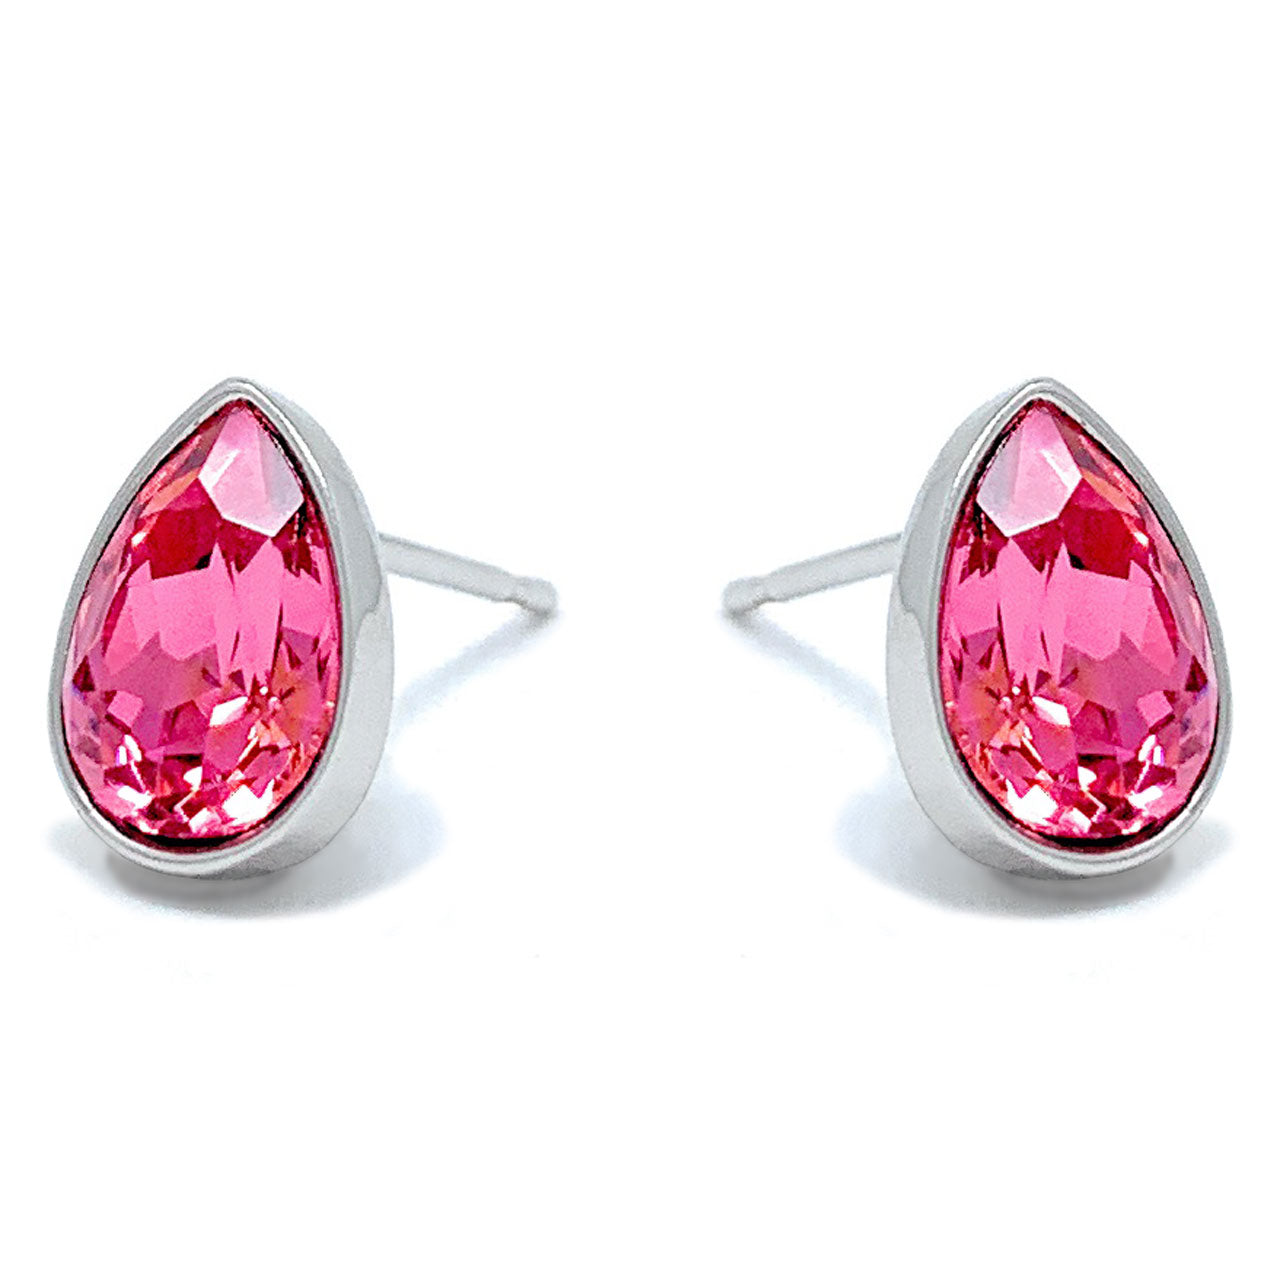 Mary Small Stud Earrings with Pink Rose Drop Crystals from Swarovski Silver Toned Rhodium Plated - Ed Heart